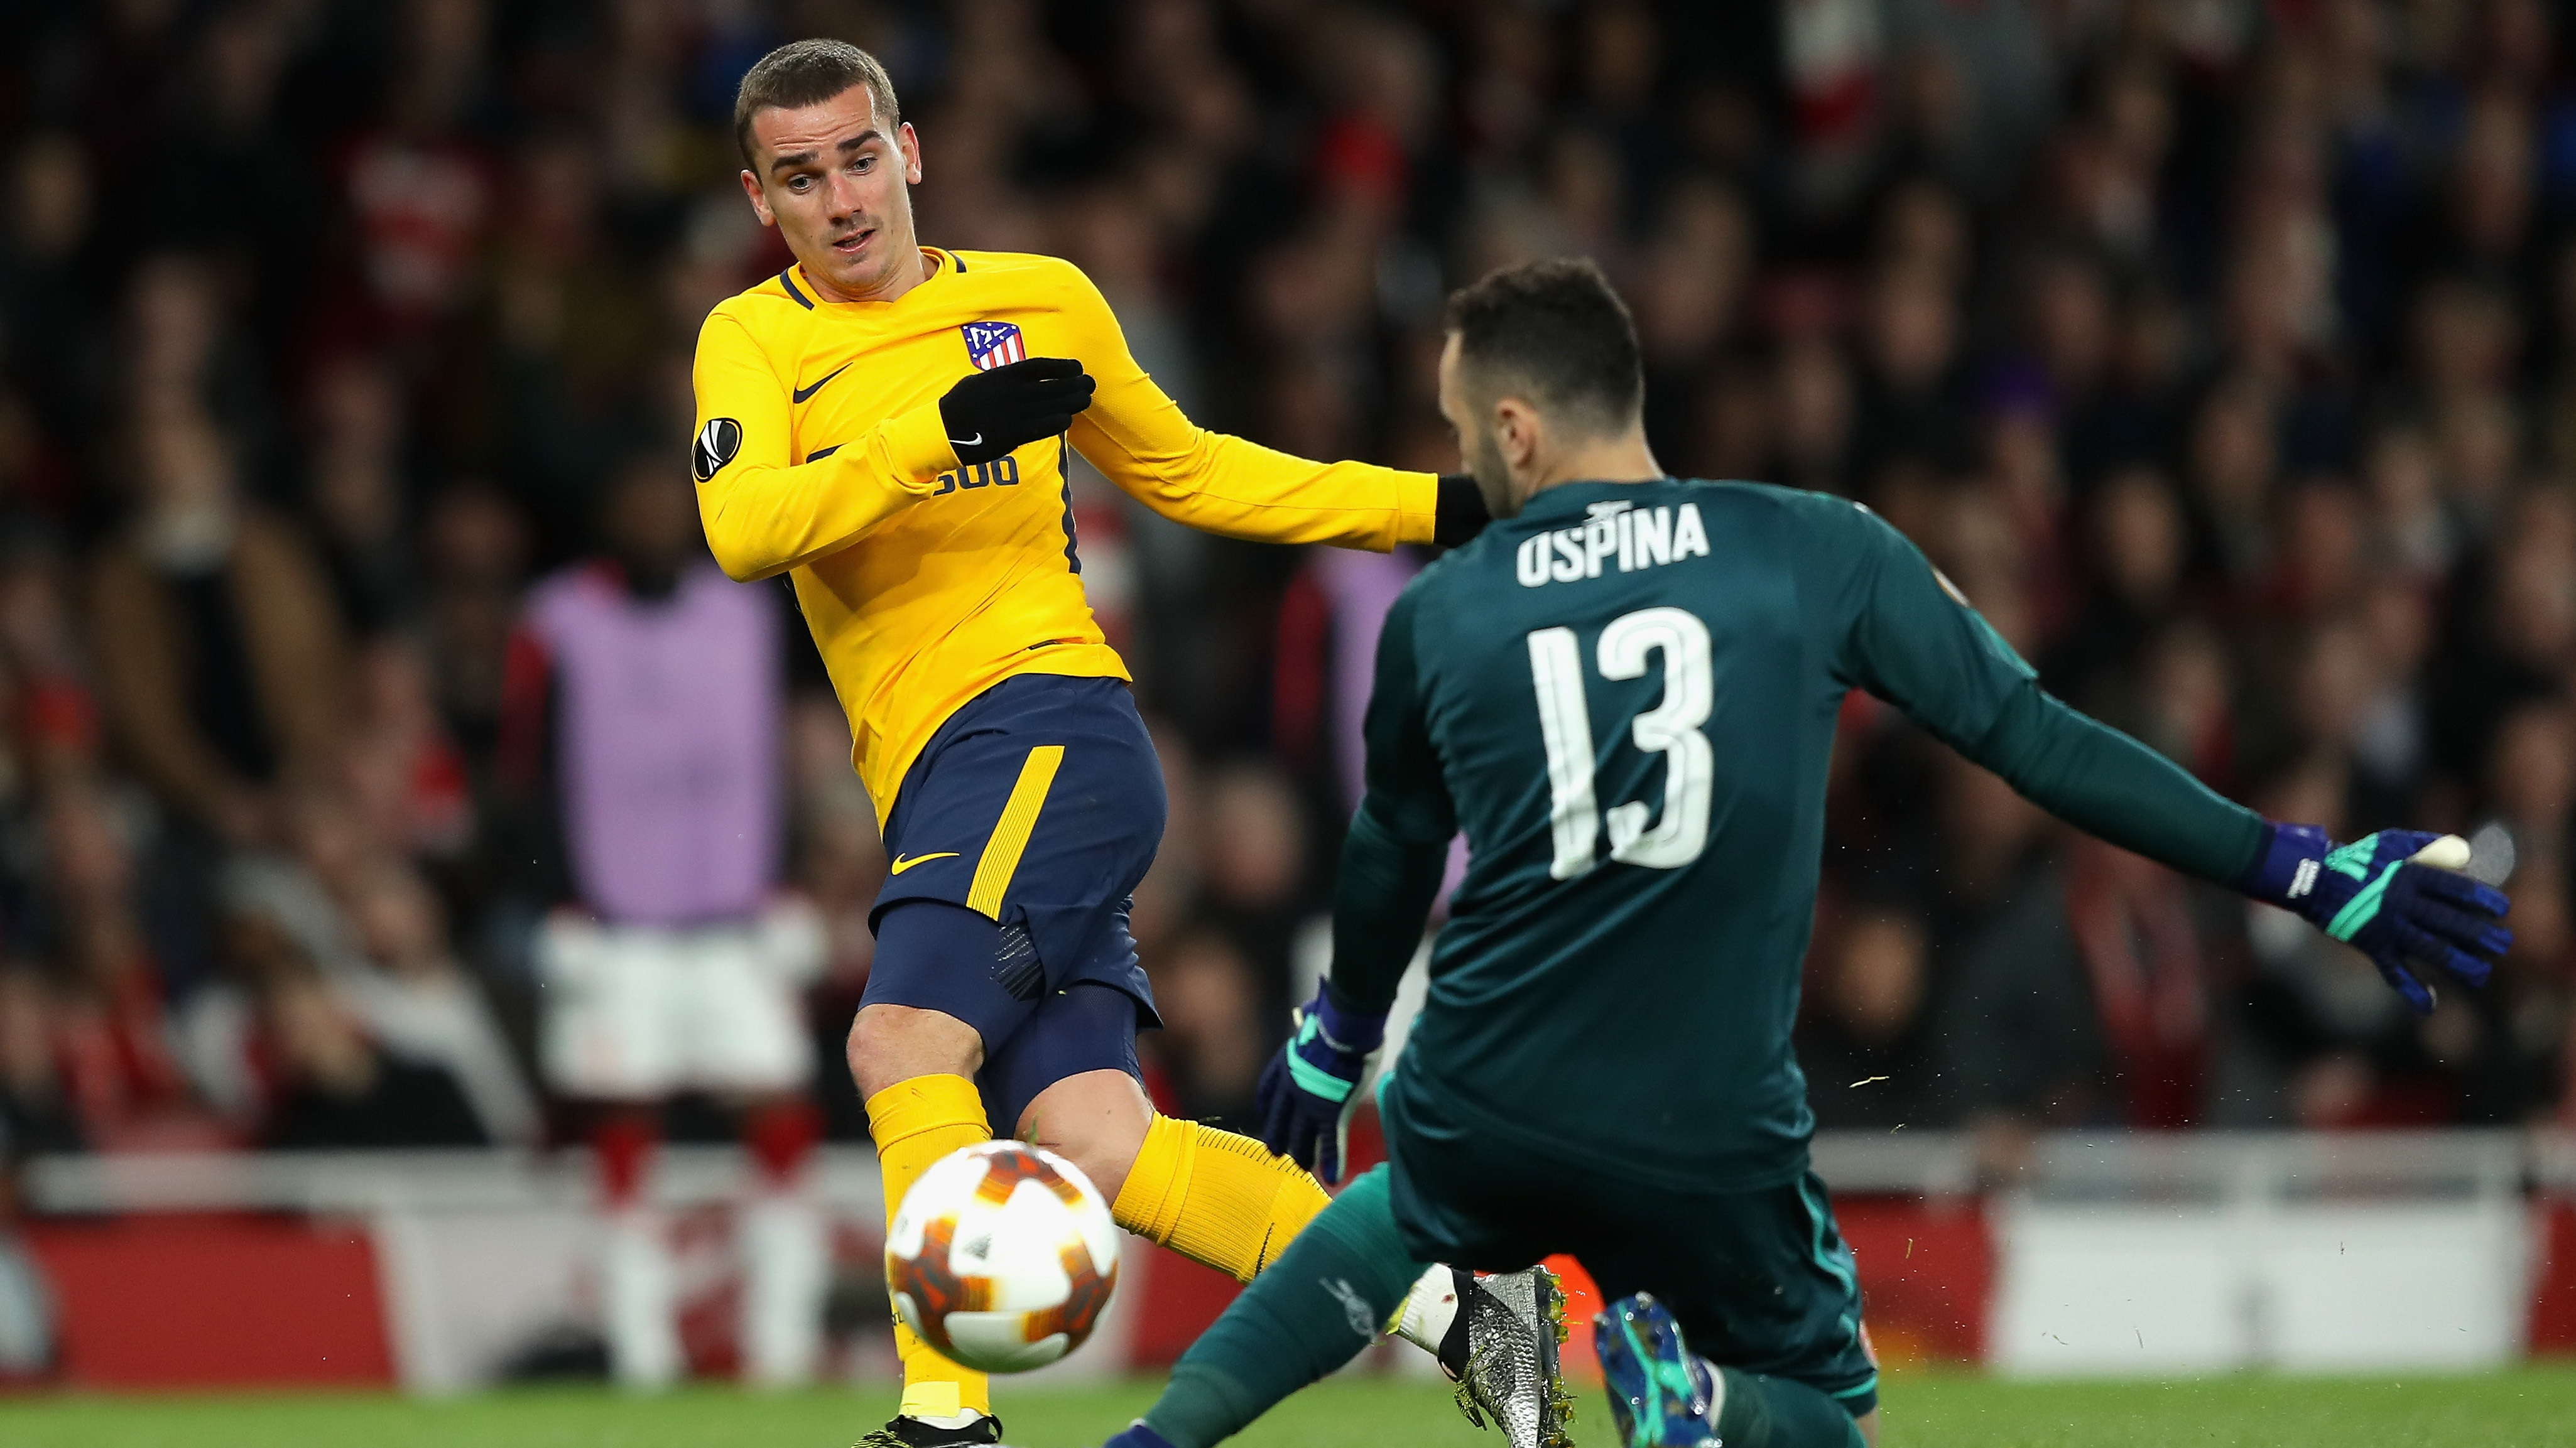 David Ospina Arsenal Antonie Griezmann Atletico Madrid Europa League